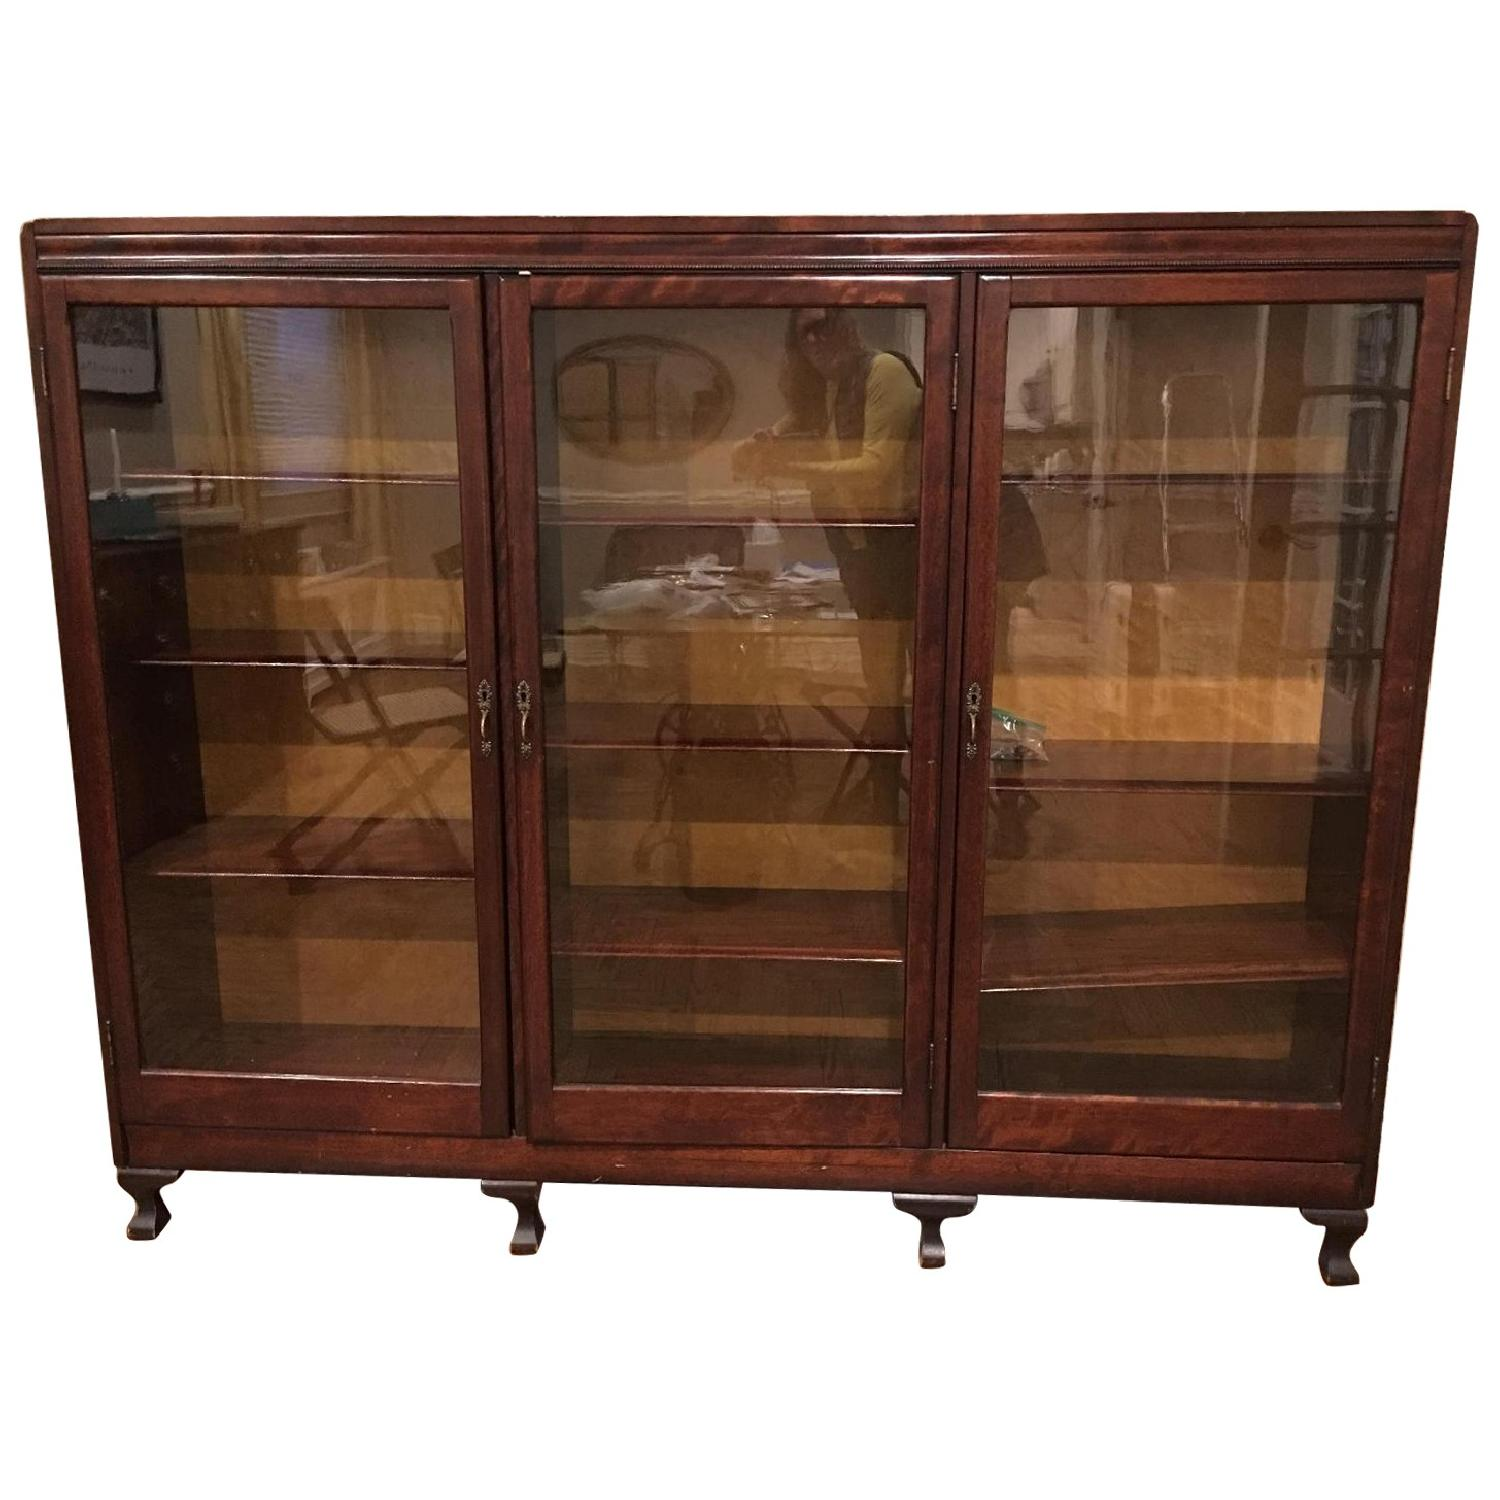 Antique Mahogany Glass-Front Bookcase/Cabinet